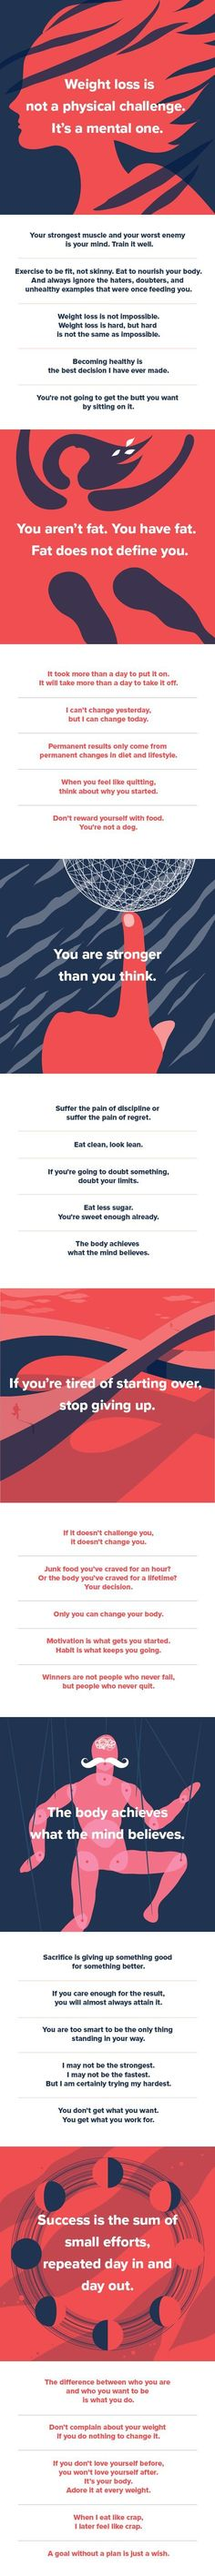 The Best Inspirational Quotes for Weight Loss